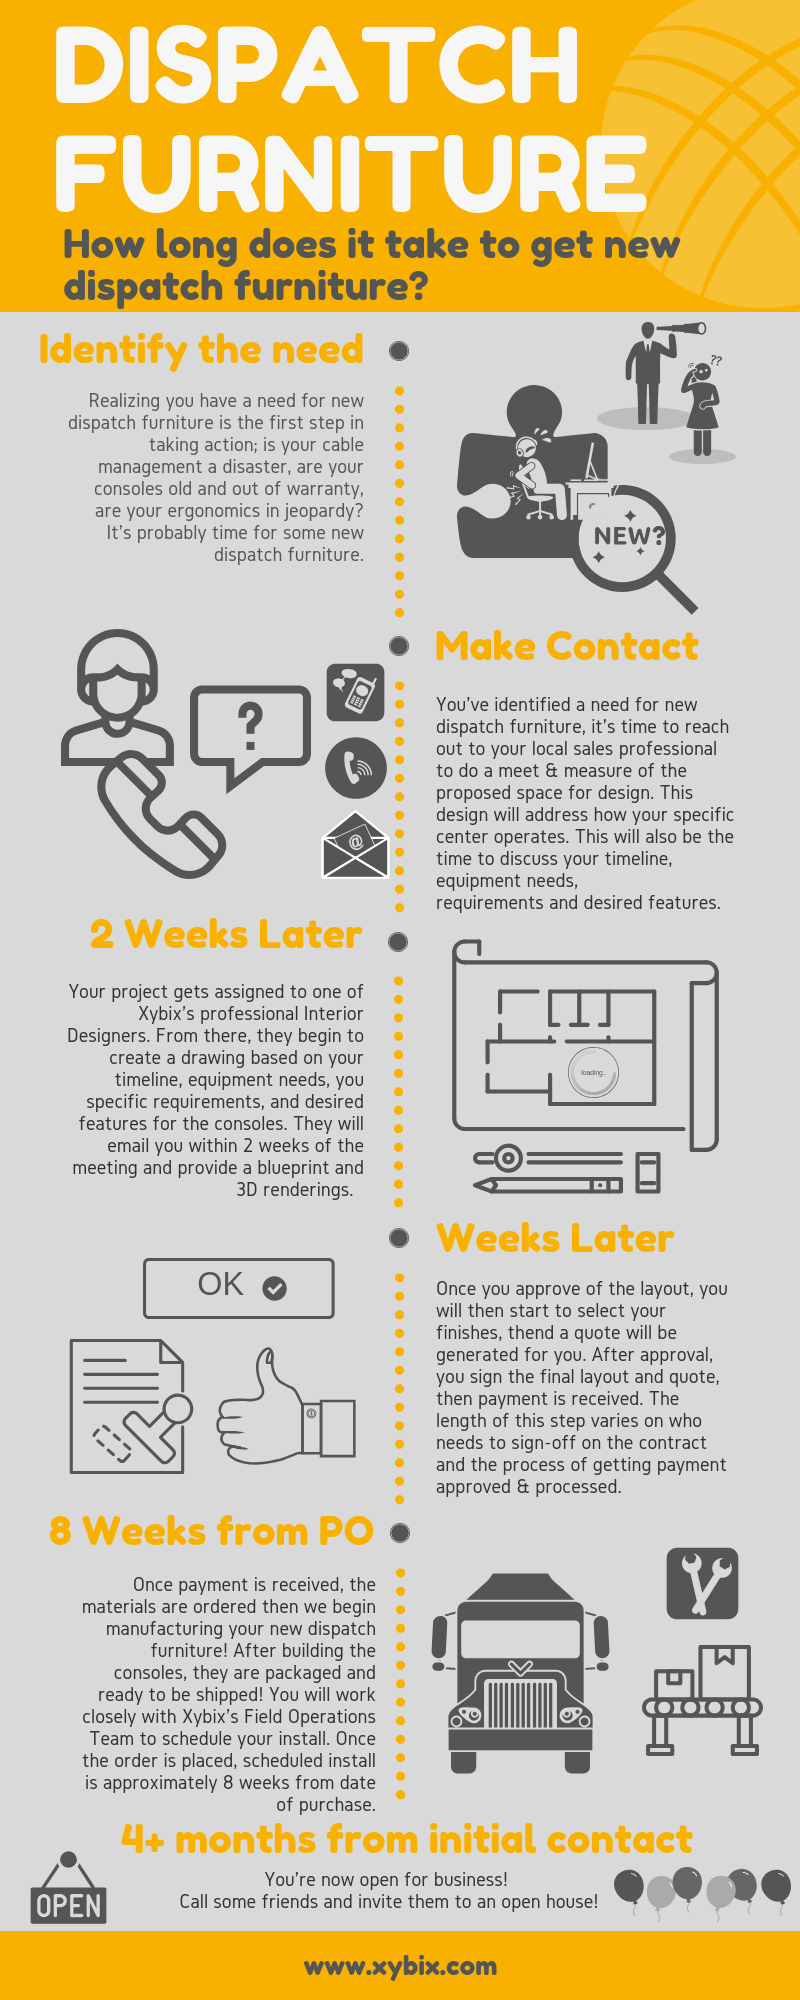 Timeline to Purchasing Dispatch Furniture